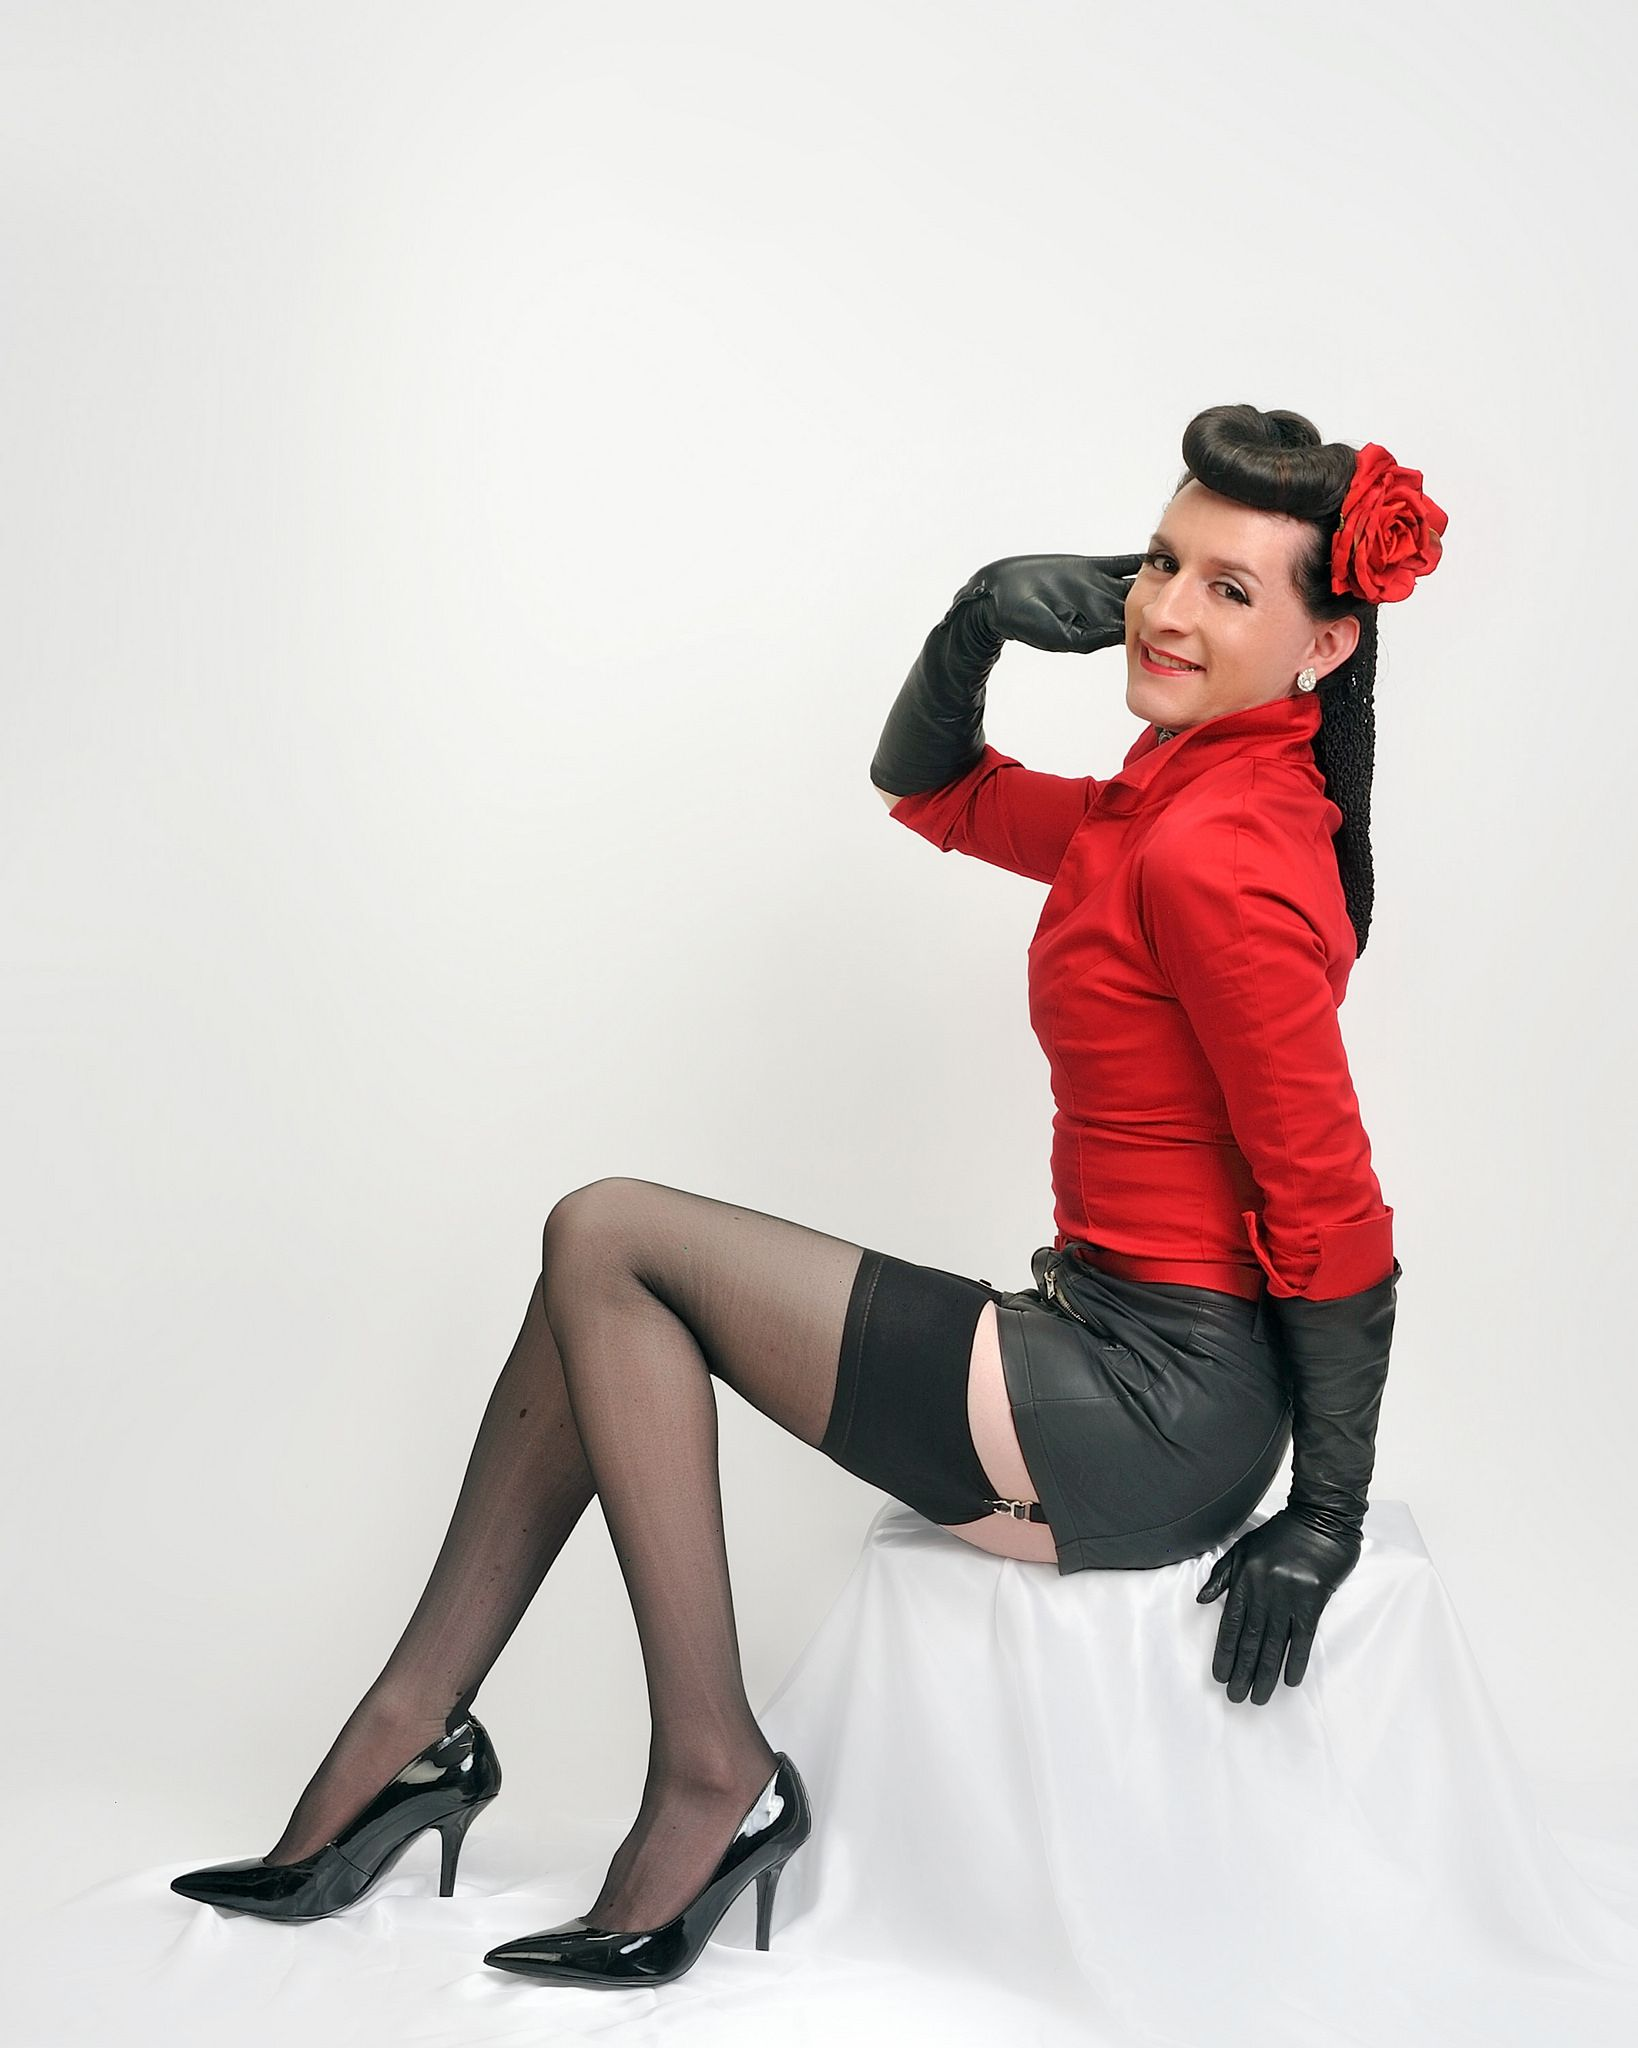 https://flic.kr/p/qZNSok | Pinup Modeling | It's nice to get some official studio time in. Dressed in all vintage haute couture. ;)